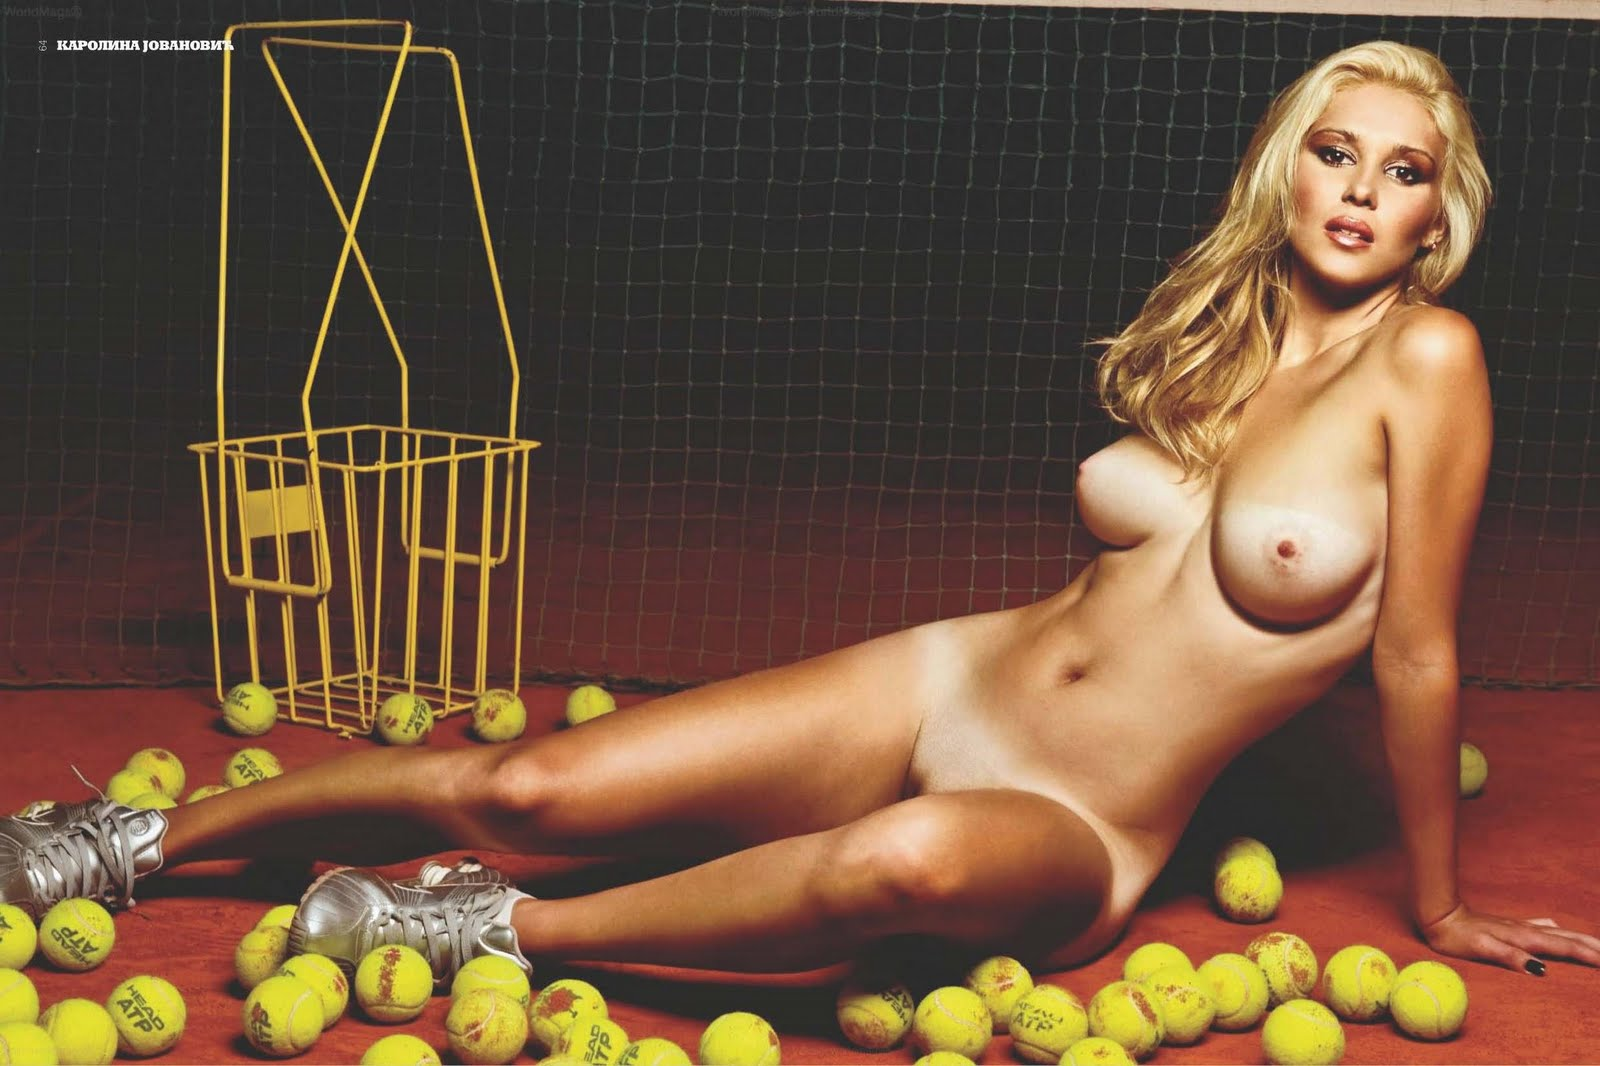 hot nude tennis player girl